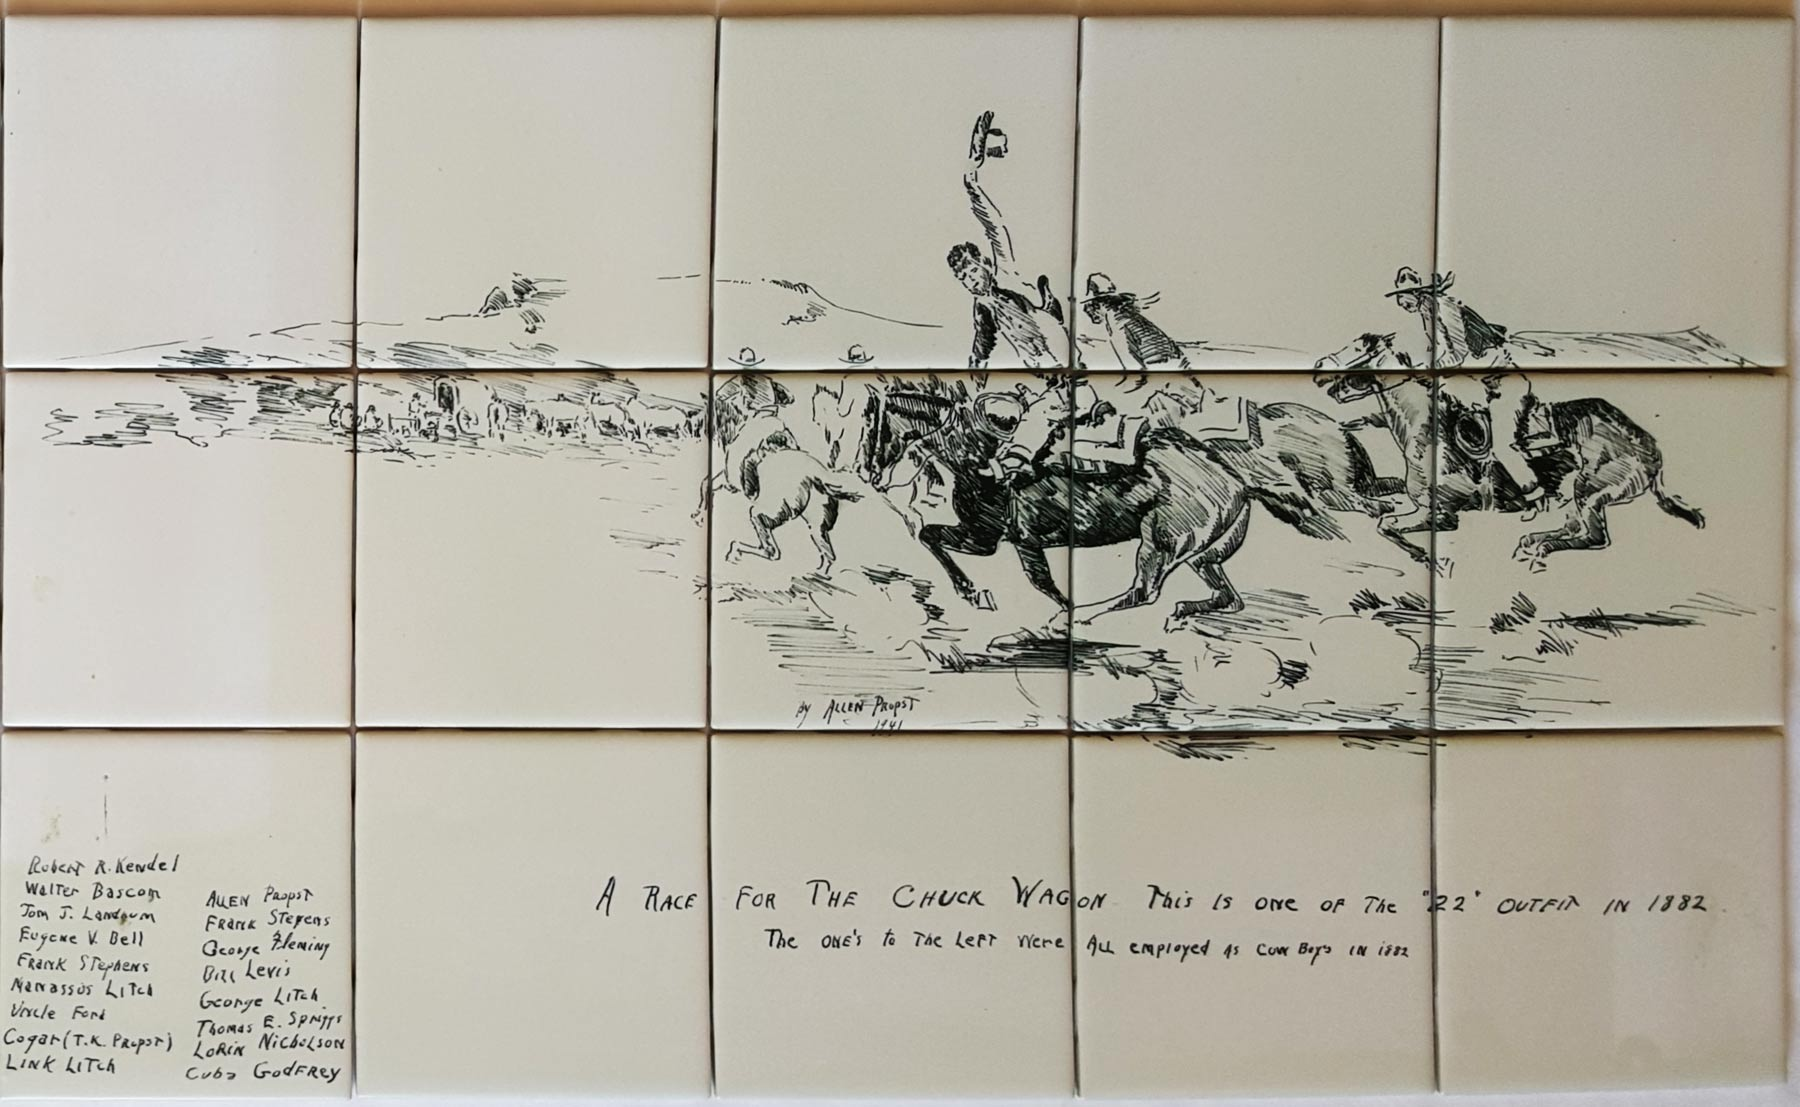 Cowboy Sketch Ceramic Backsplash Tile